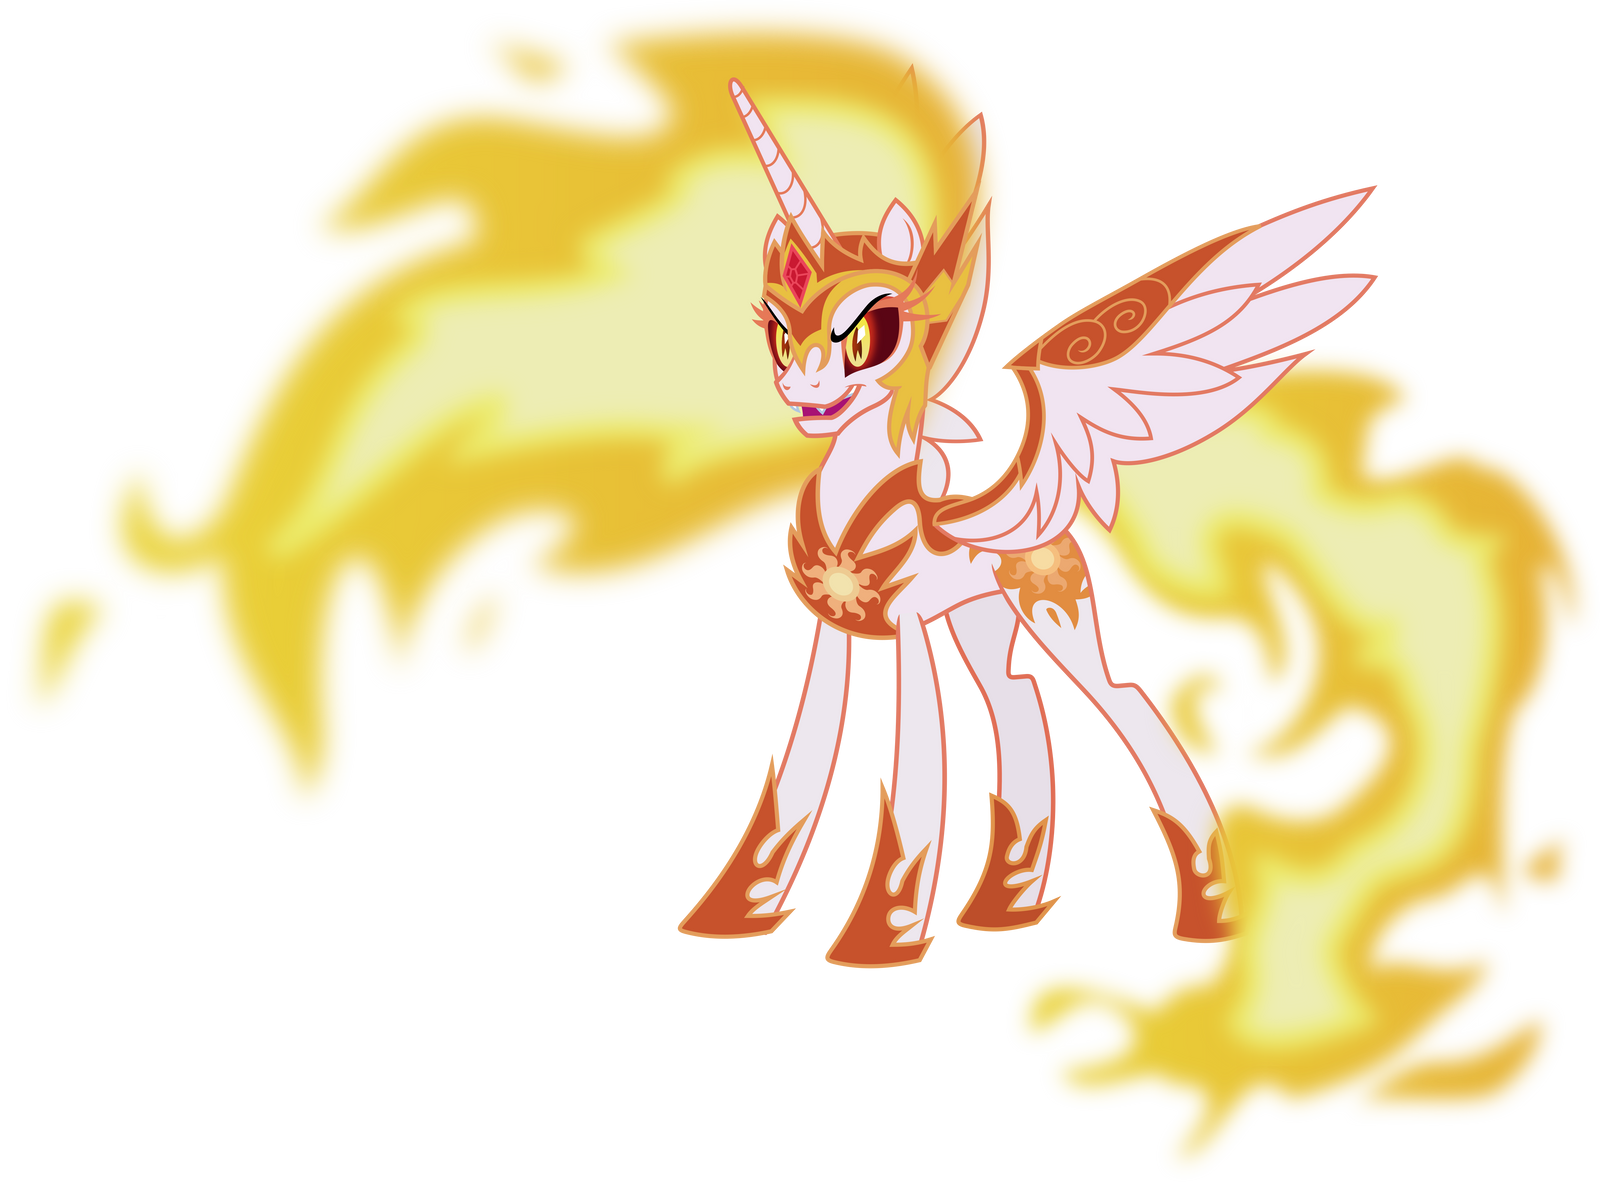 daybreaker_by_magister39-db9vos6.png